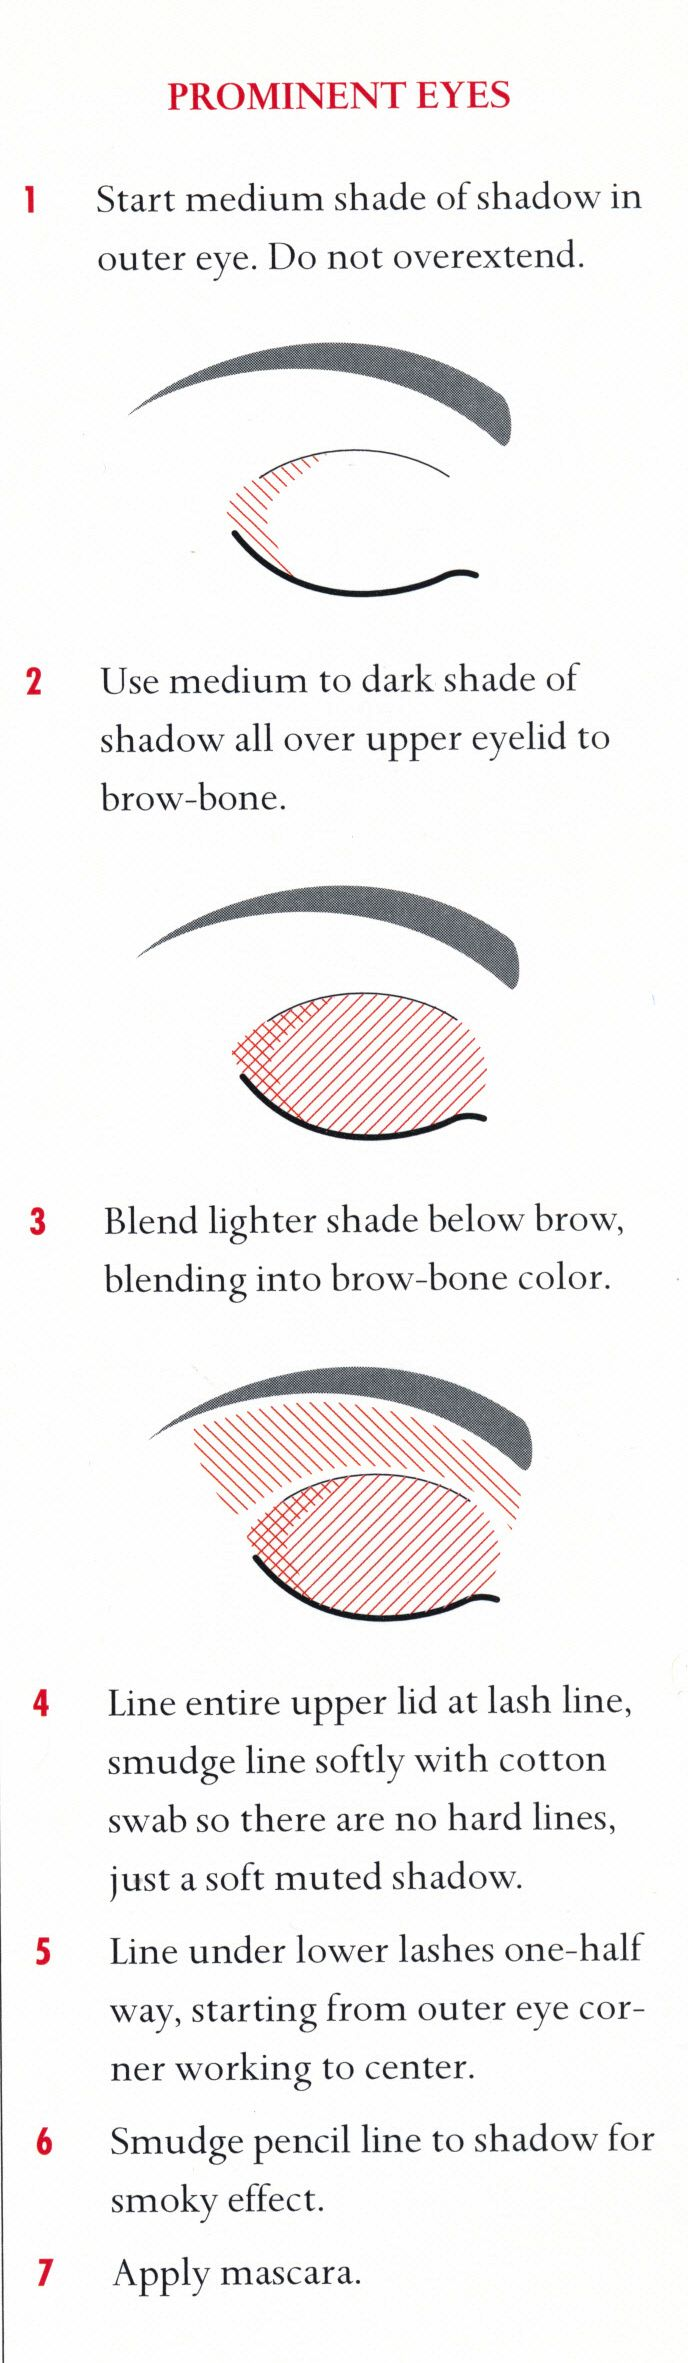 Eye make up for prominent eyes